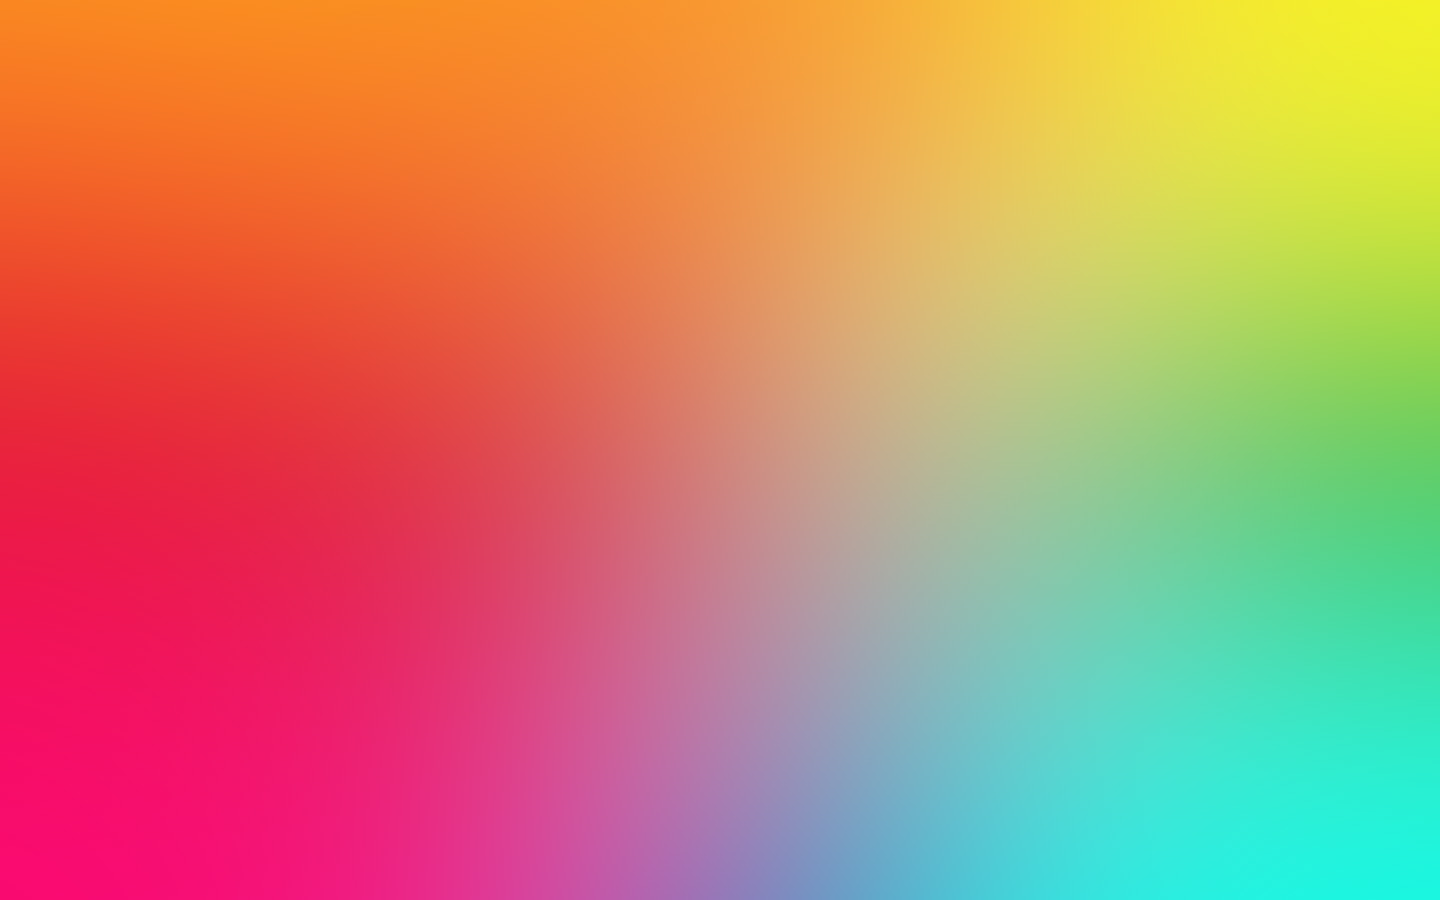 Download Black Wallpaper For Android Sh70 Rainbow Color Gradation Blur